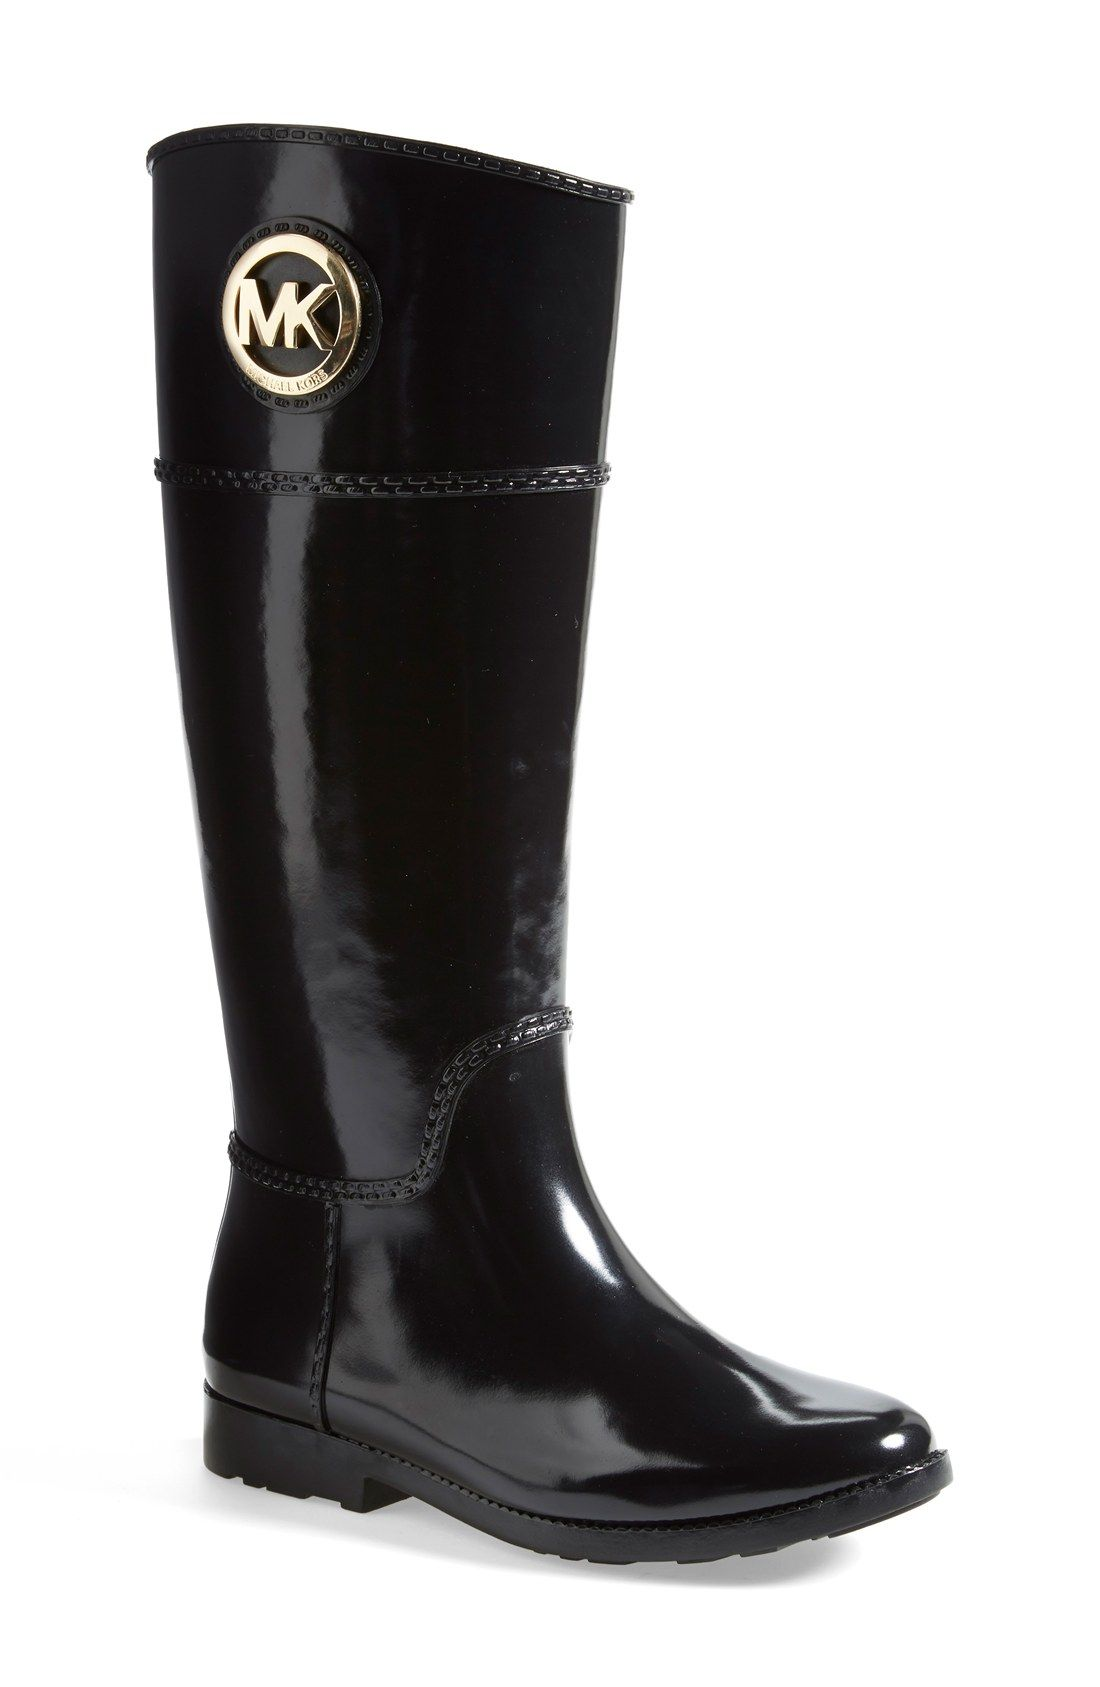 Rain boots with style, crushing on this pair from Michael Kors ...